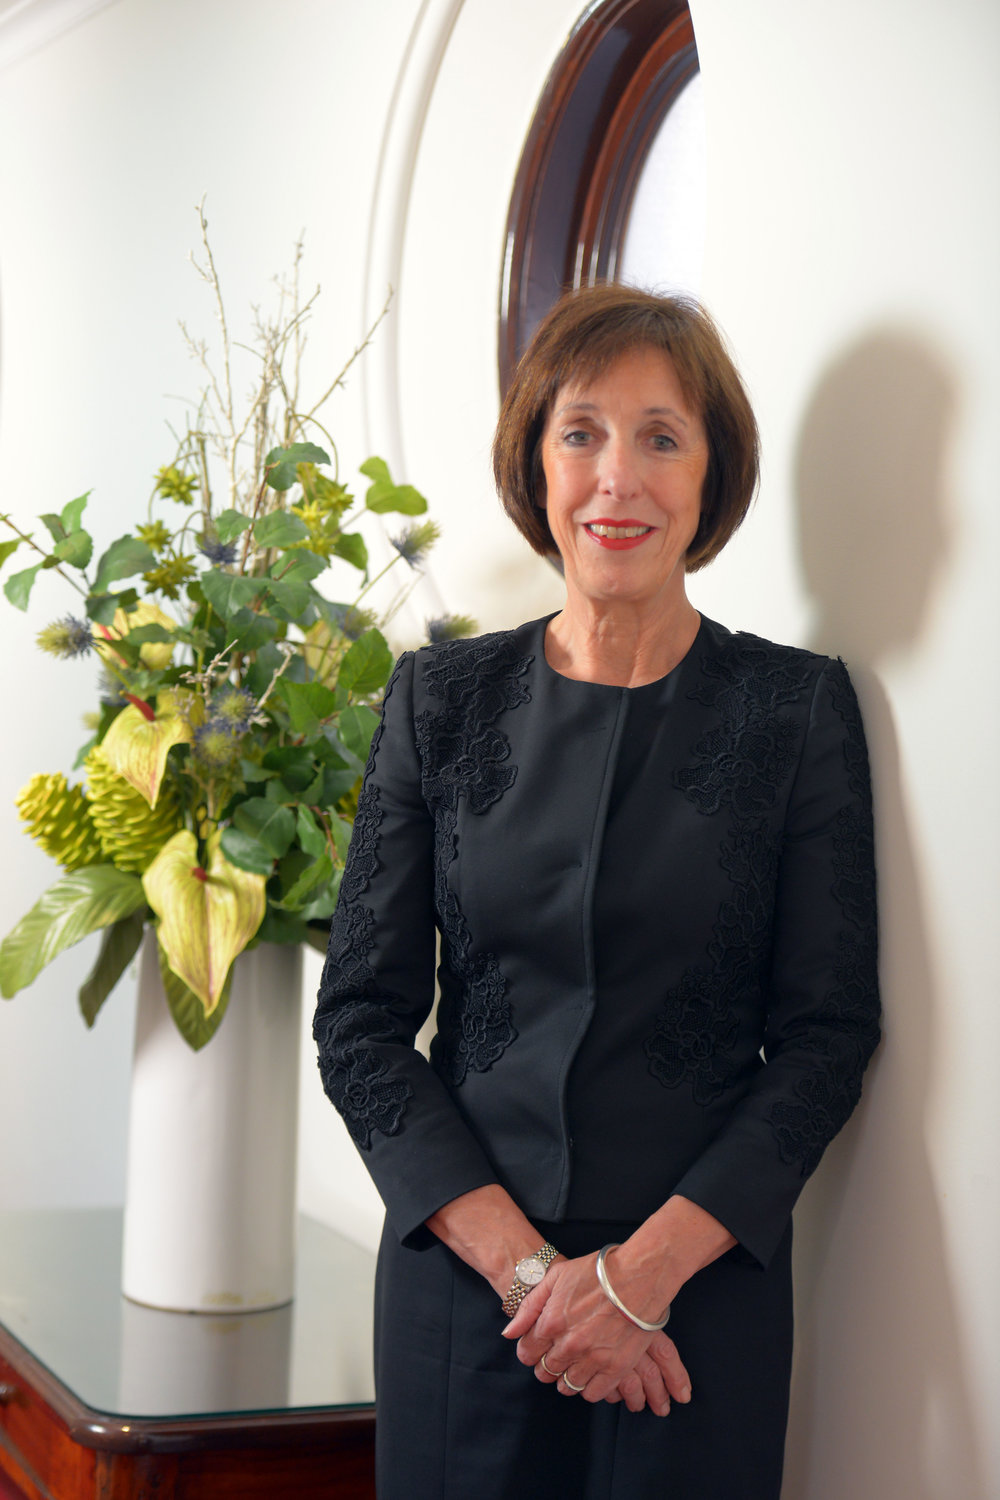 The Honourable Chief Justice Marilyn Warren ACCHAIR OF THE Judicial College of Victoria -